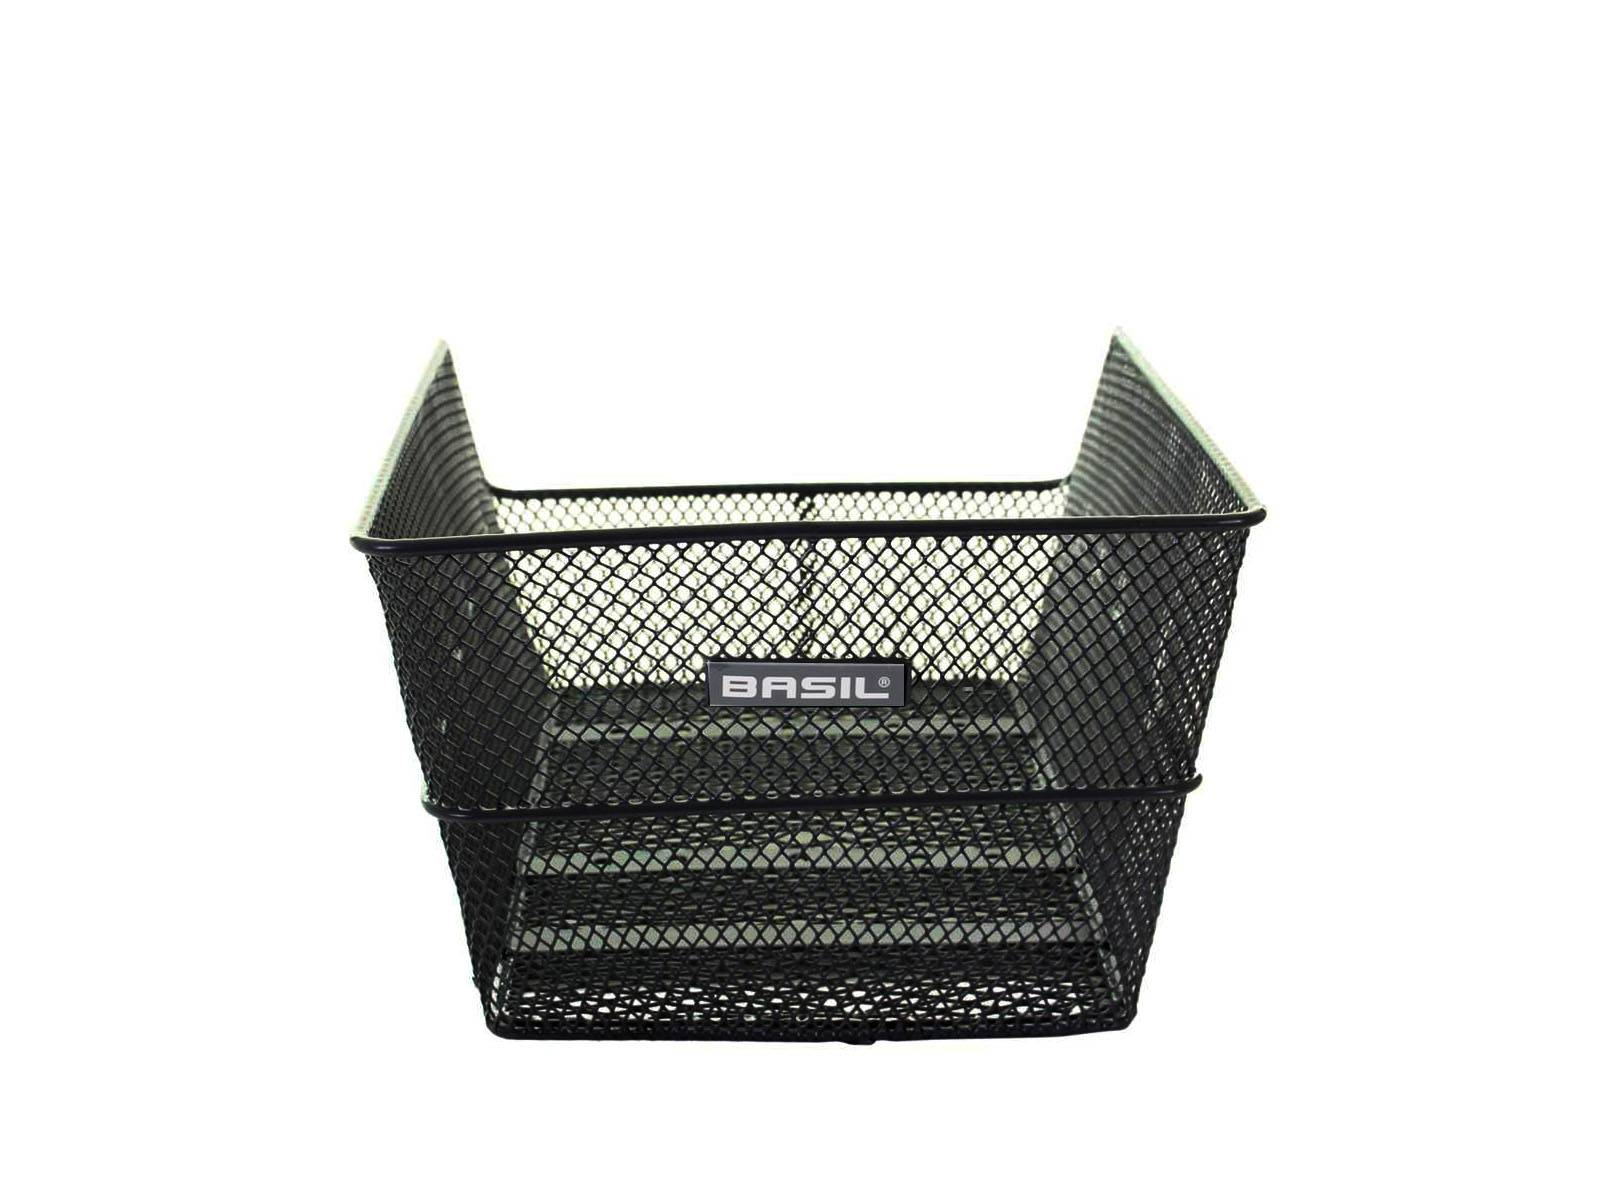 Basil Rear Bike Basket Cento Black Bicyclecomfort